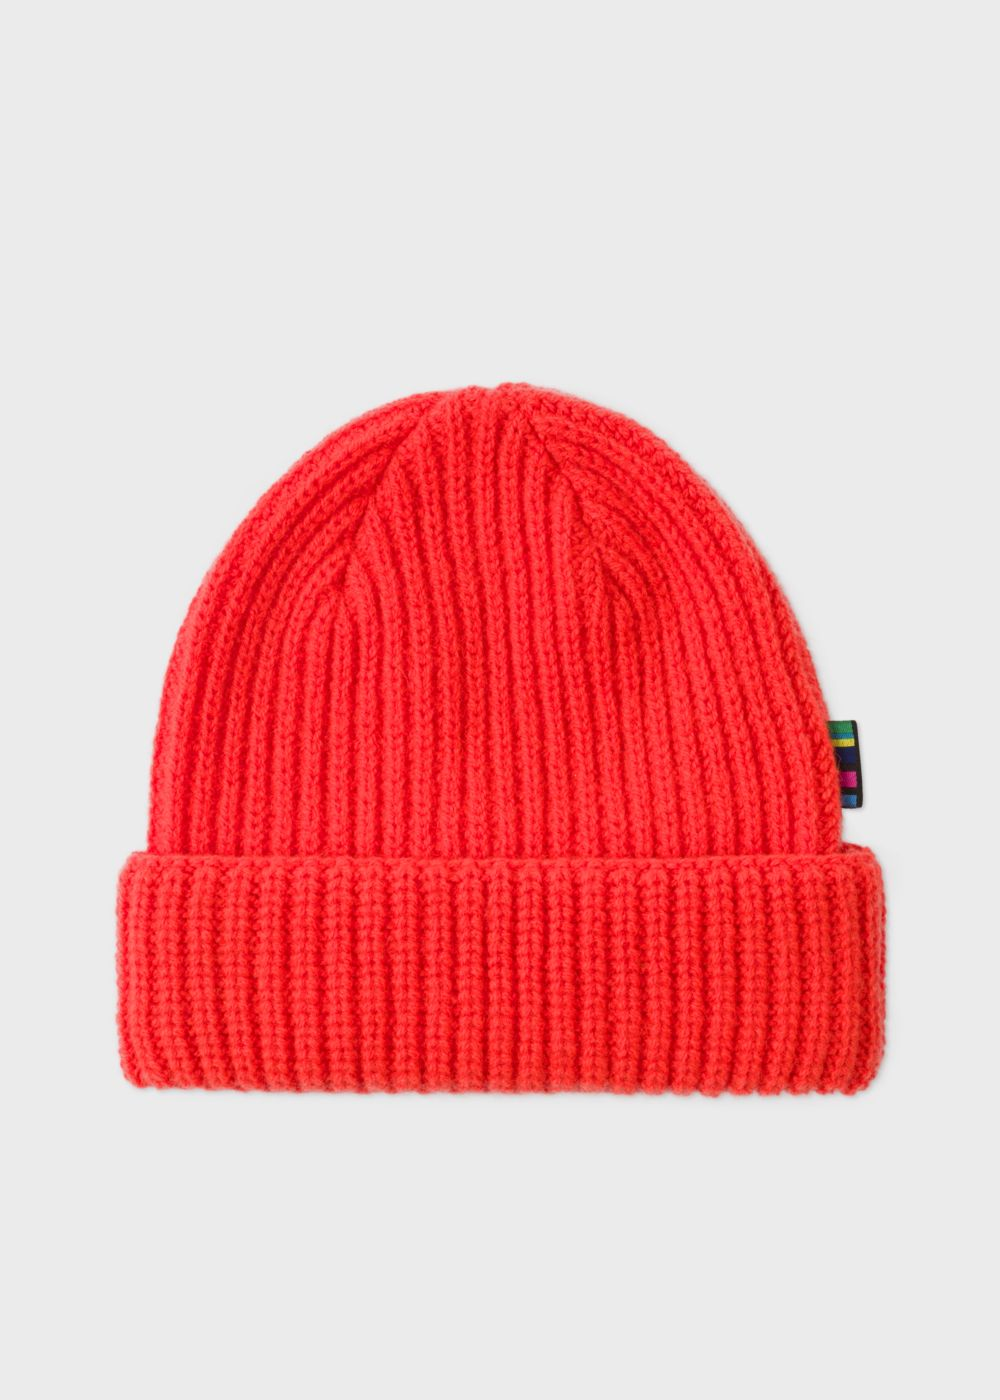 Men s Neon Red Wool Beanie Hat by Paul Smith — Thread 2574a2cc80f